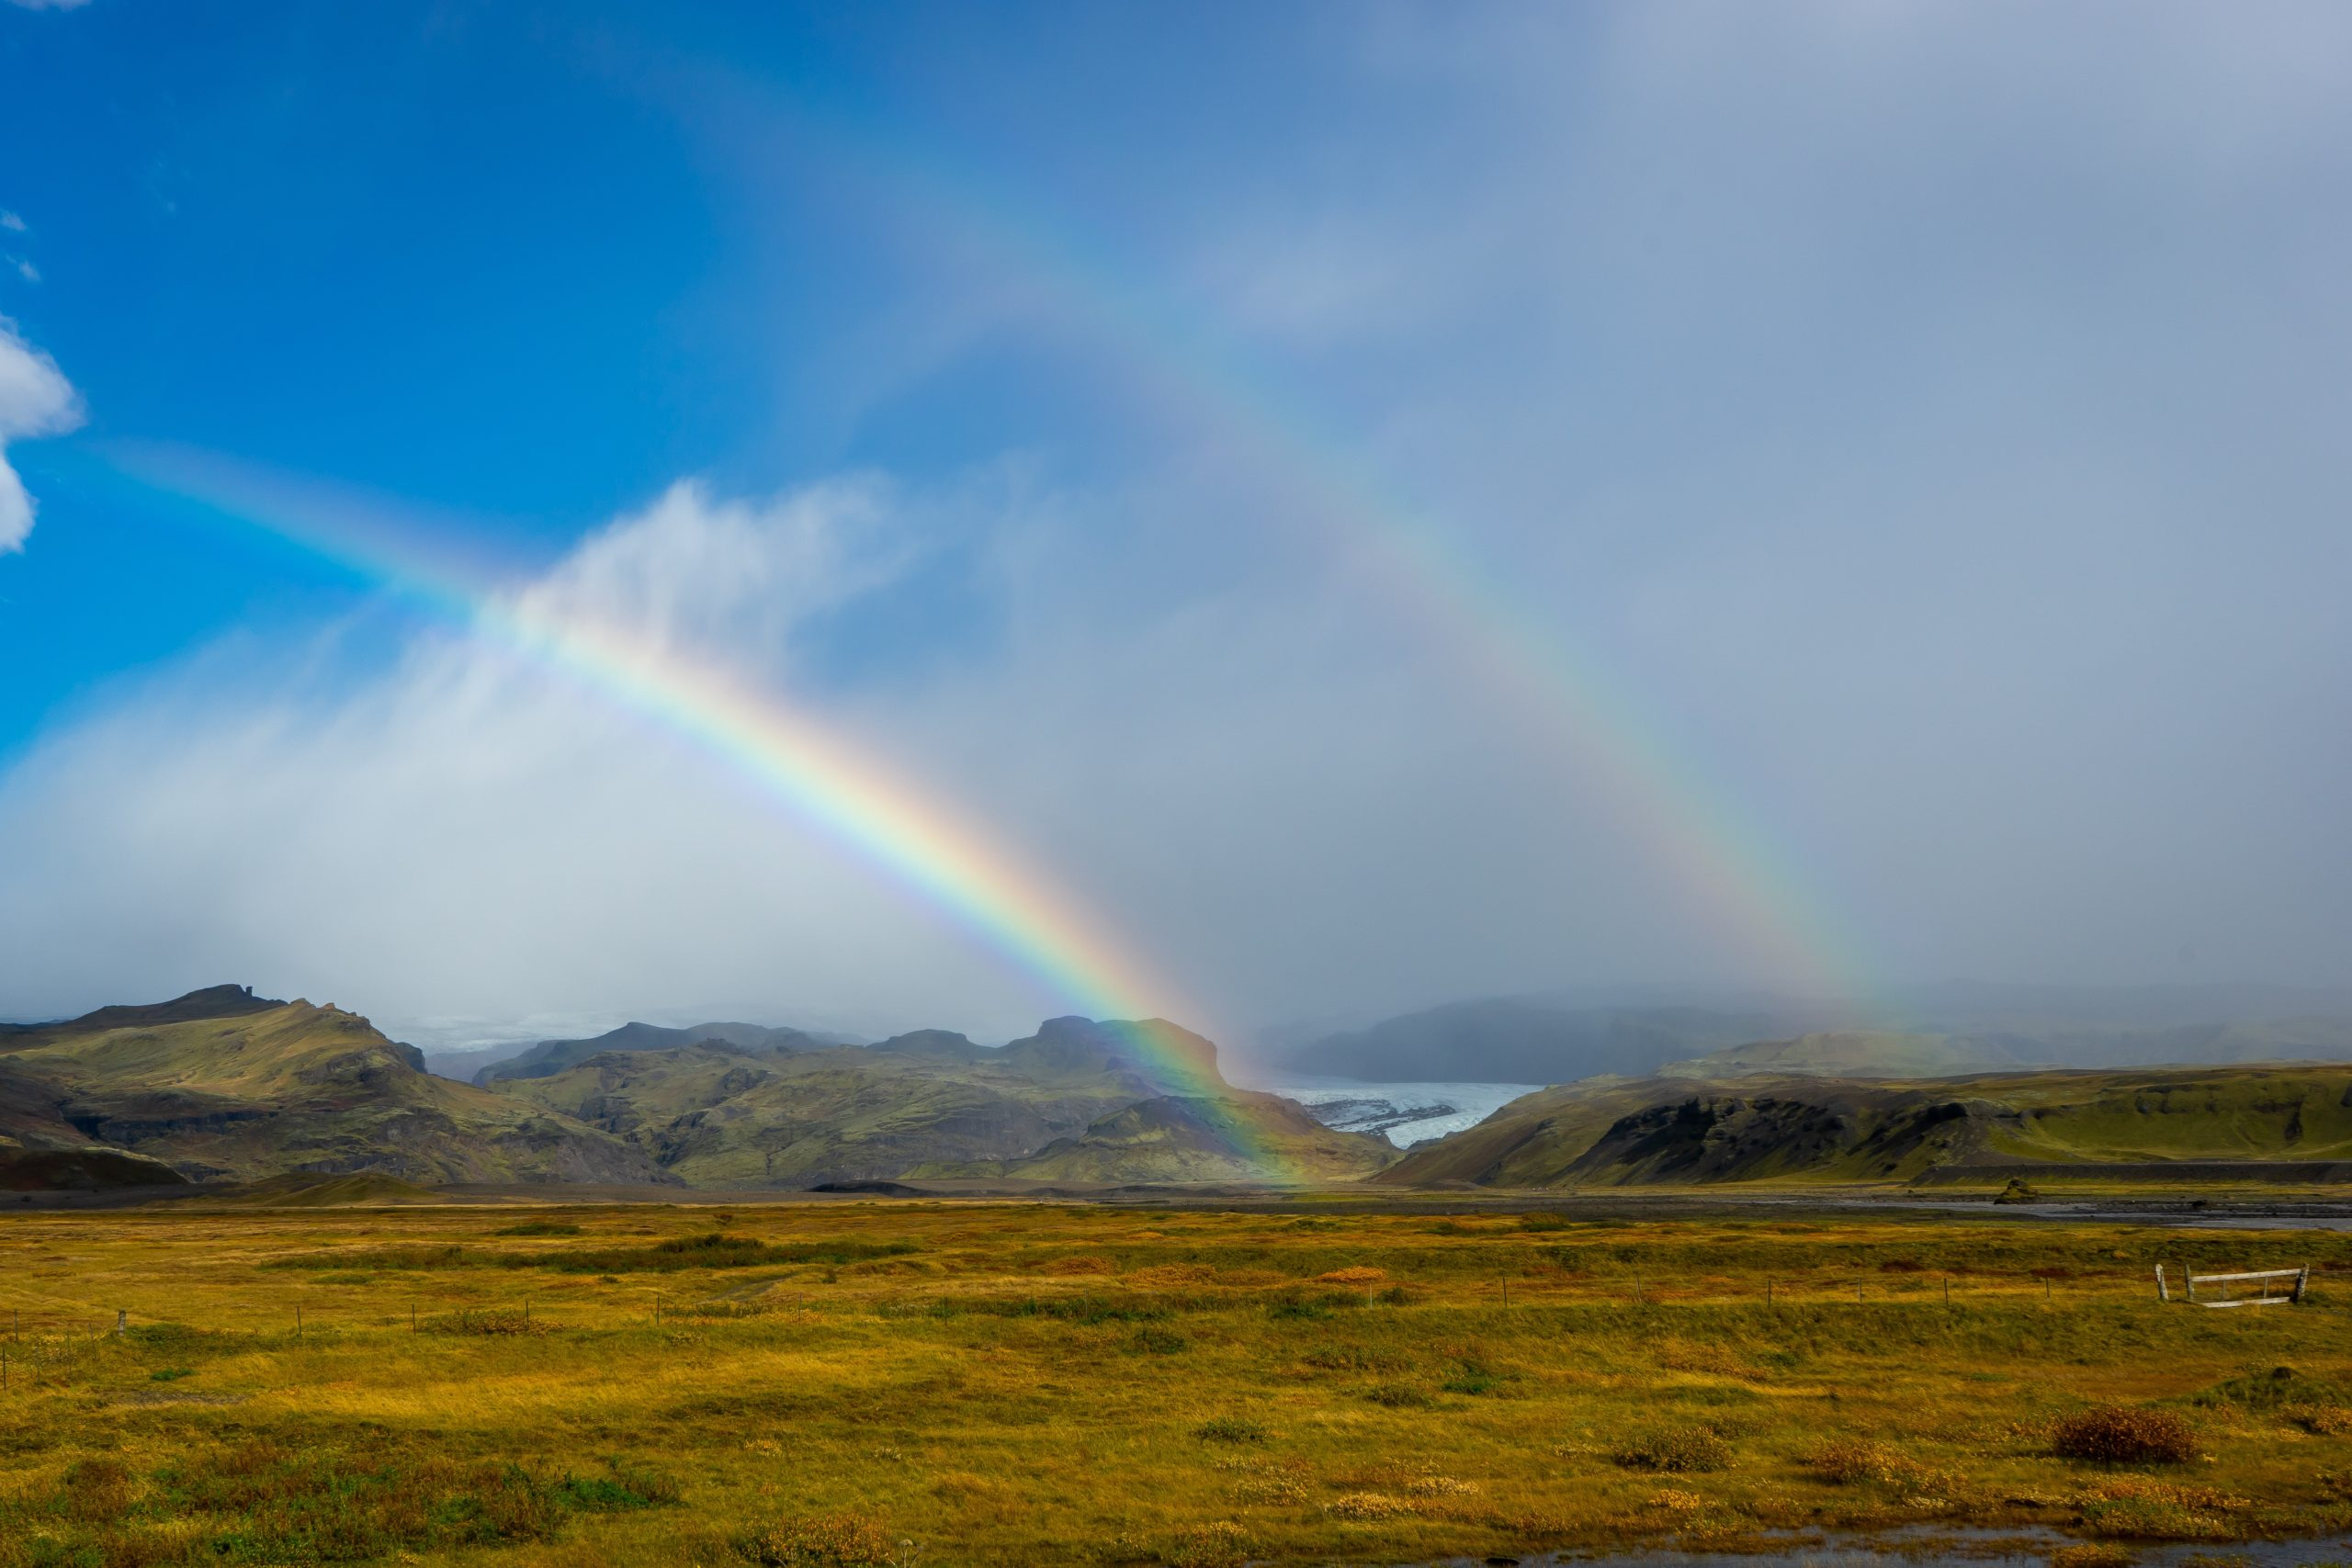 Double Rainbows Small Business Hope